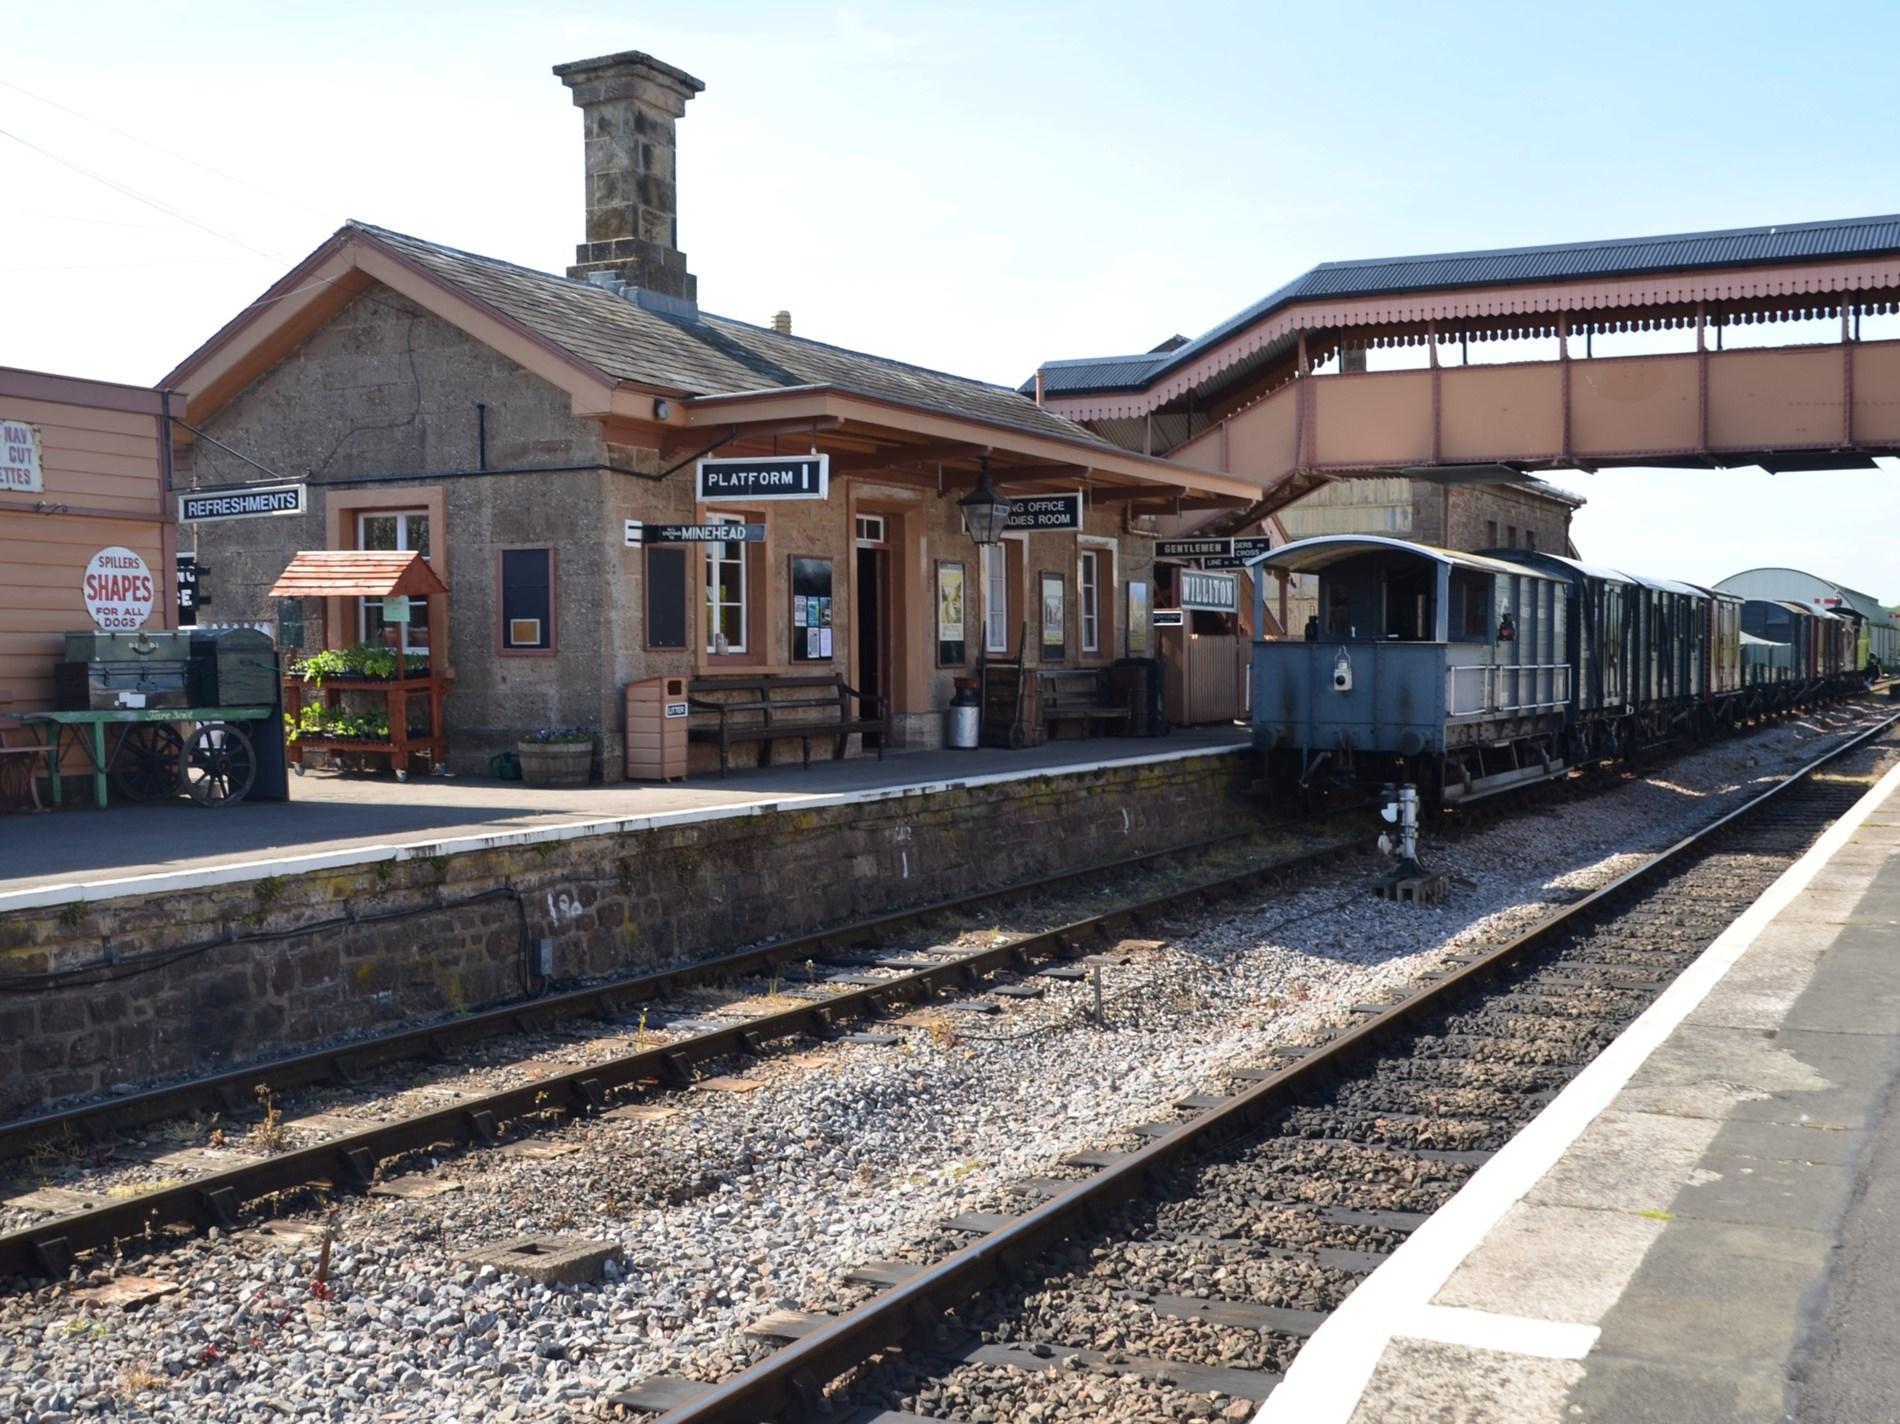 The West Somerset Railway is conveniently located behind the manin farmhouse